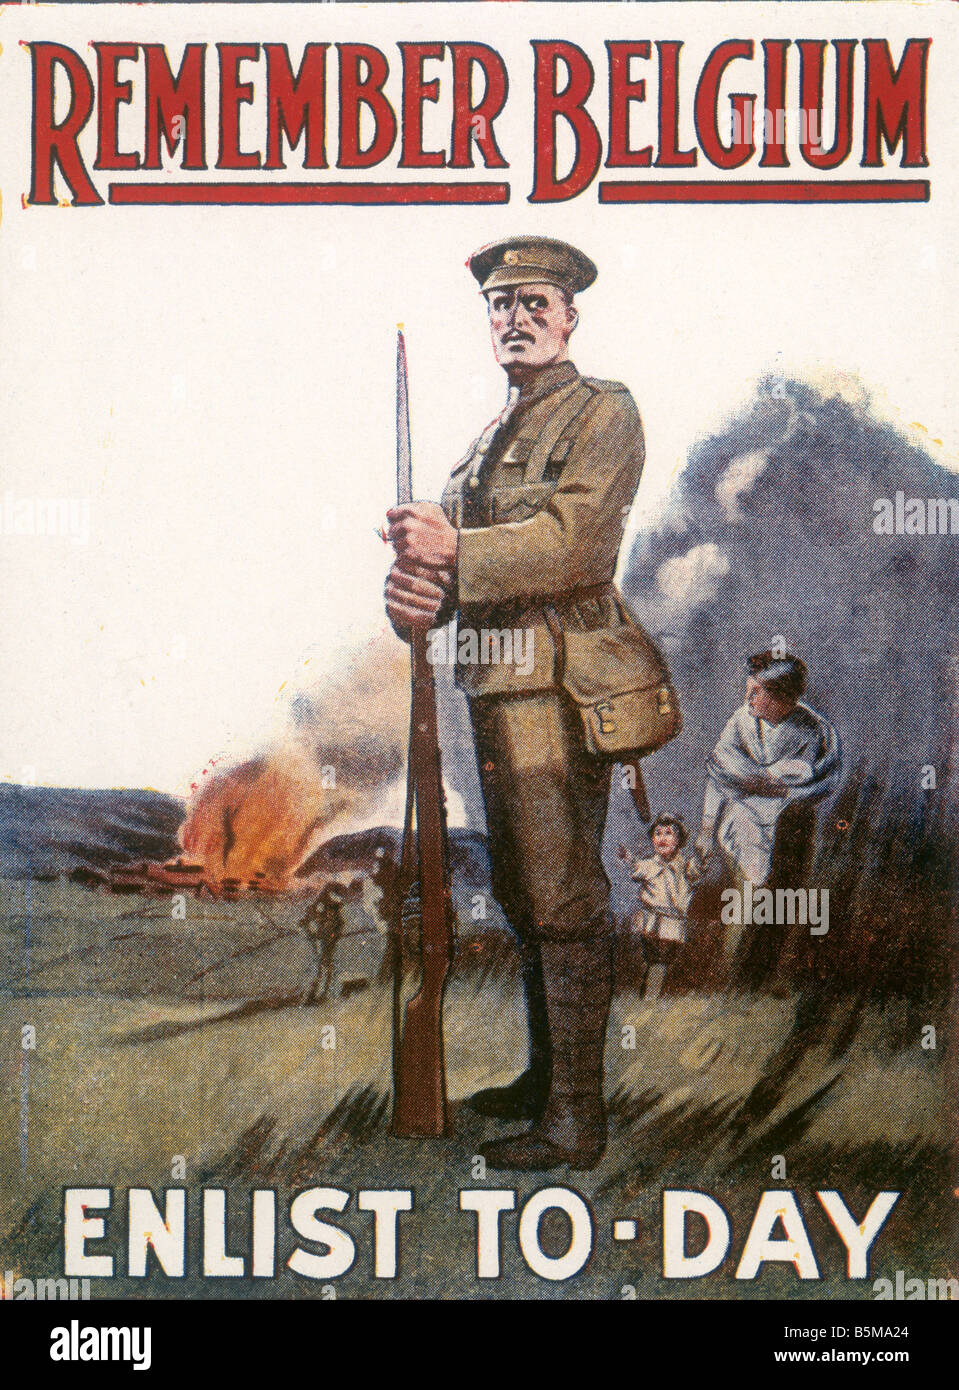 2 G55 P1 1915 124 WW1 Propaganda Remember Belgium History World War One Propaganda REMEMBER BELGIUM ENLIST TO DAY - Stock Image